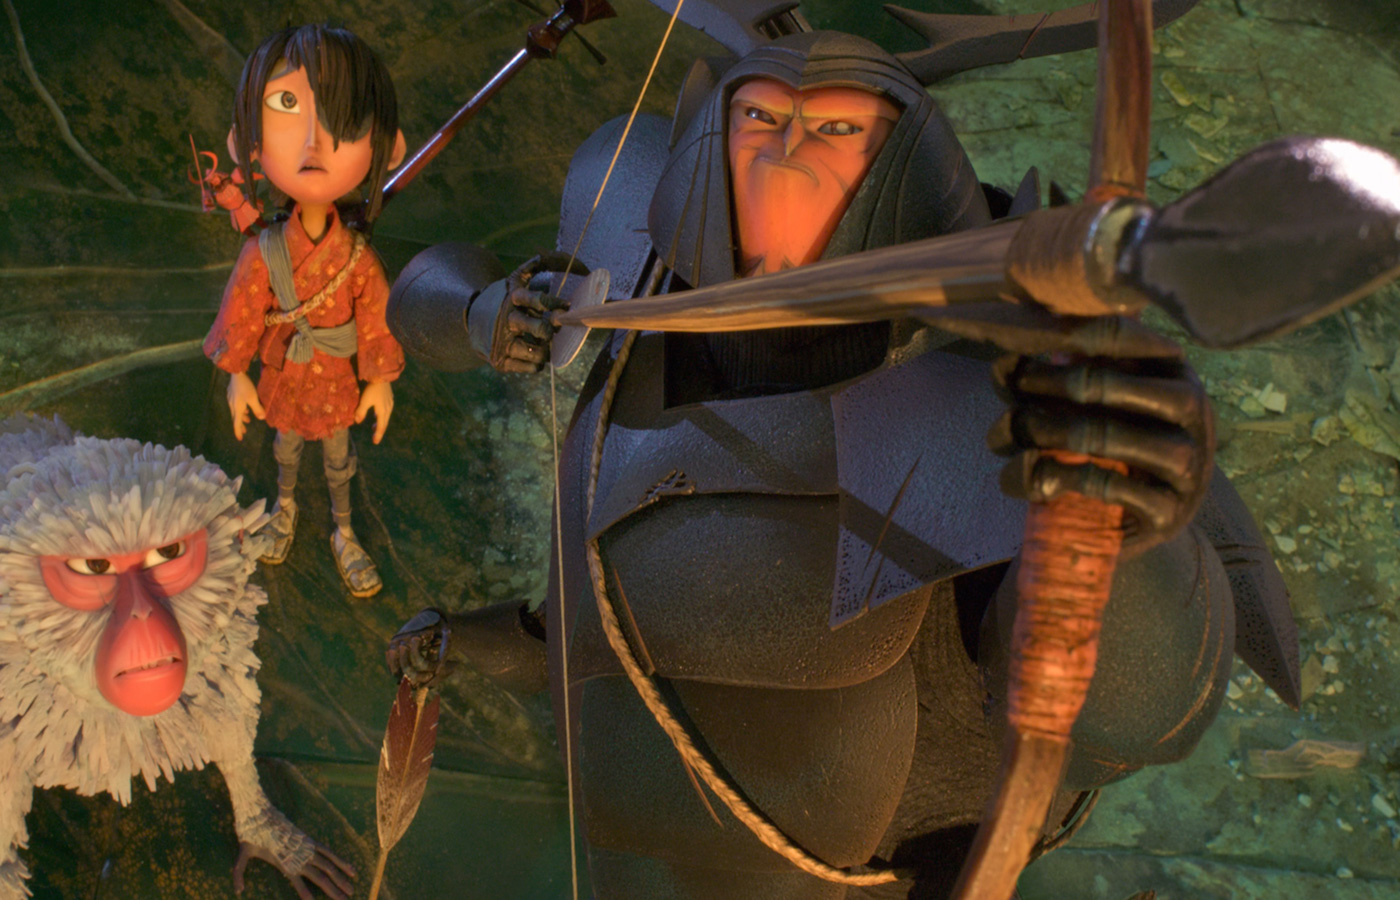 kubo-and-the-two-strings-laika.jpg